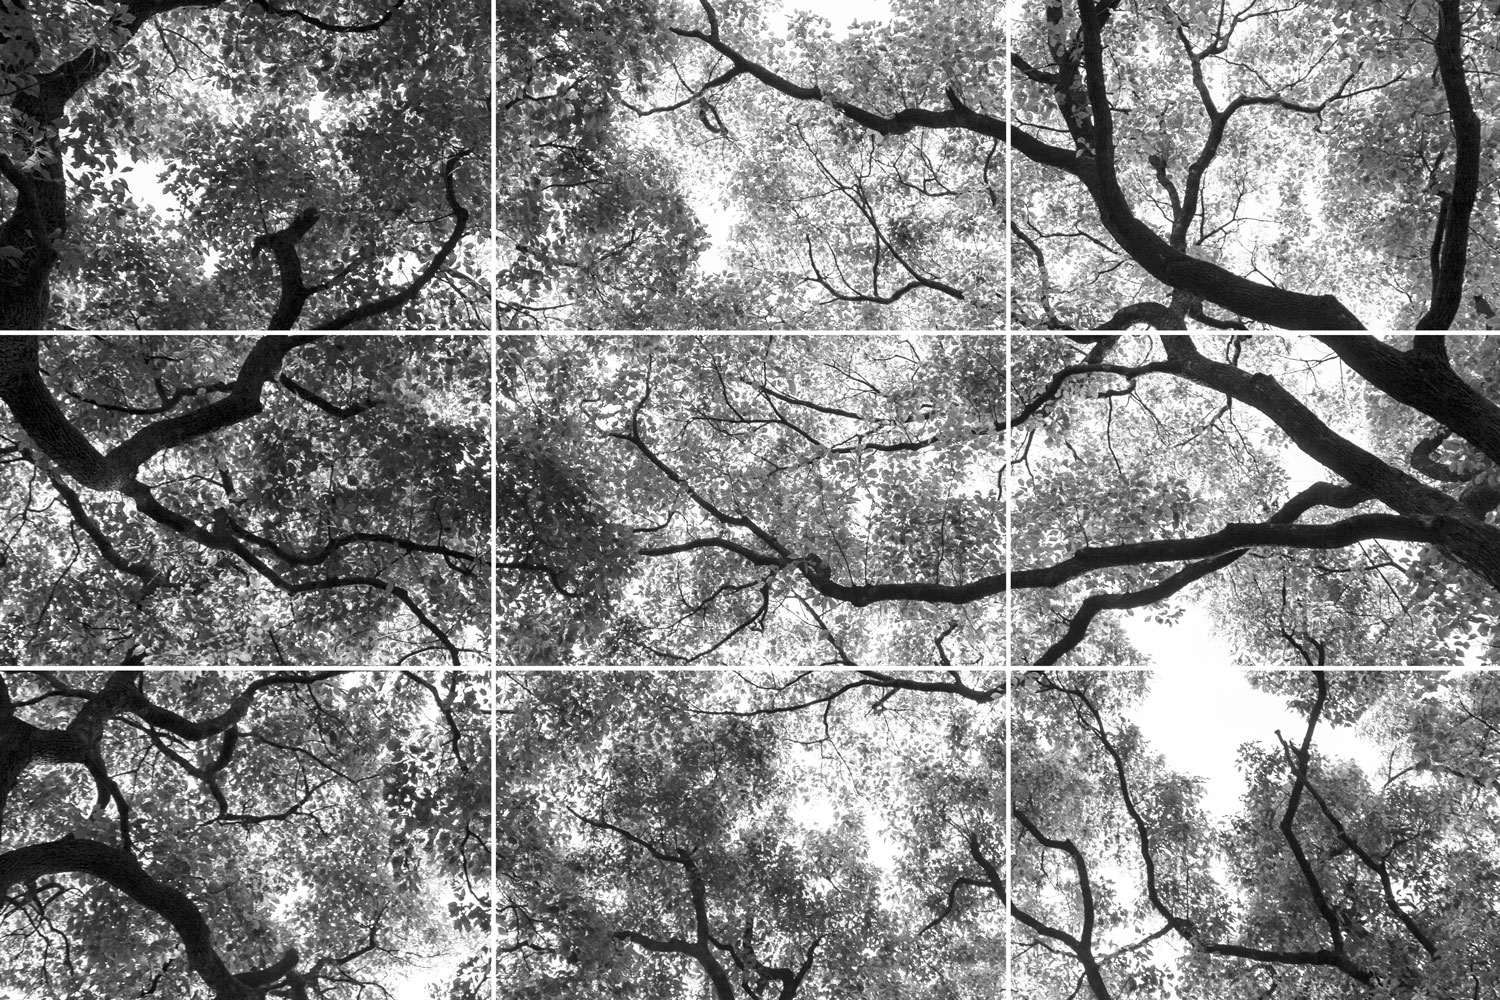 Rule of thirds examples - a canopy of tree branches and leaves